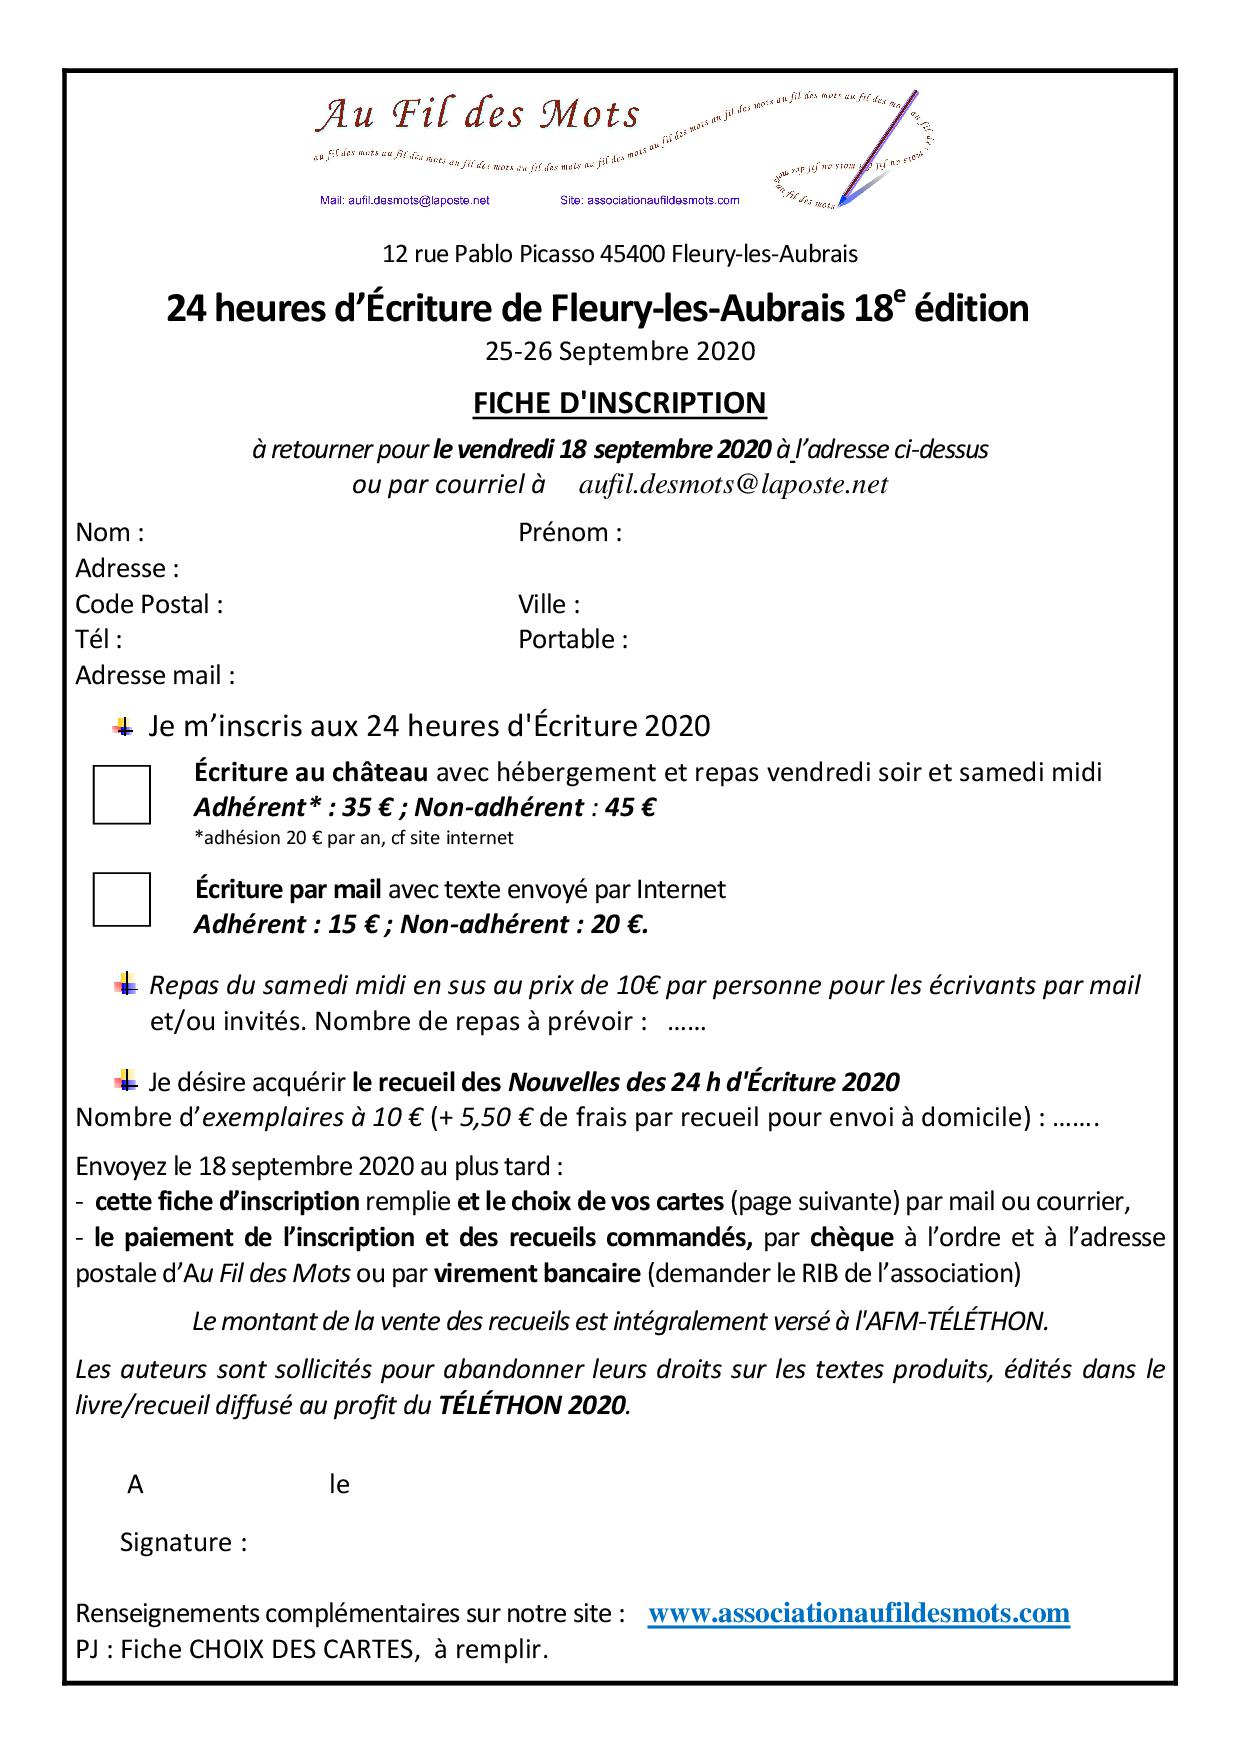 24h_2020_Fiche_Inscription1.jpg